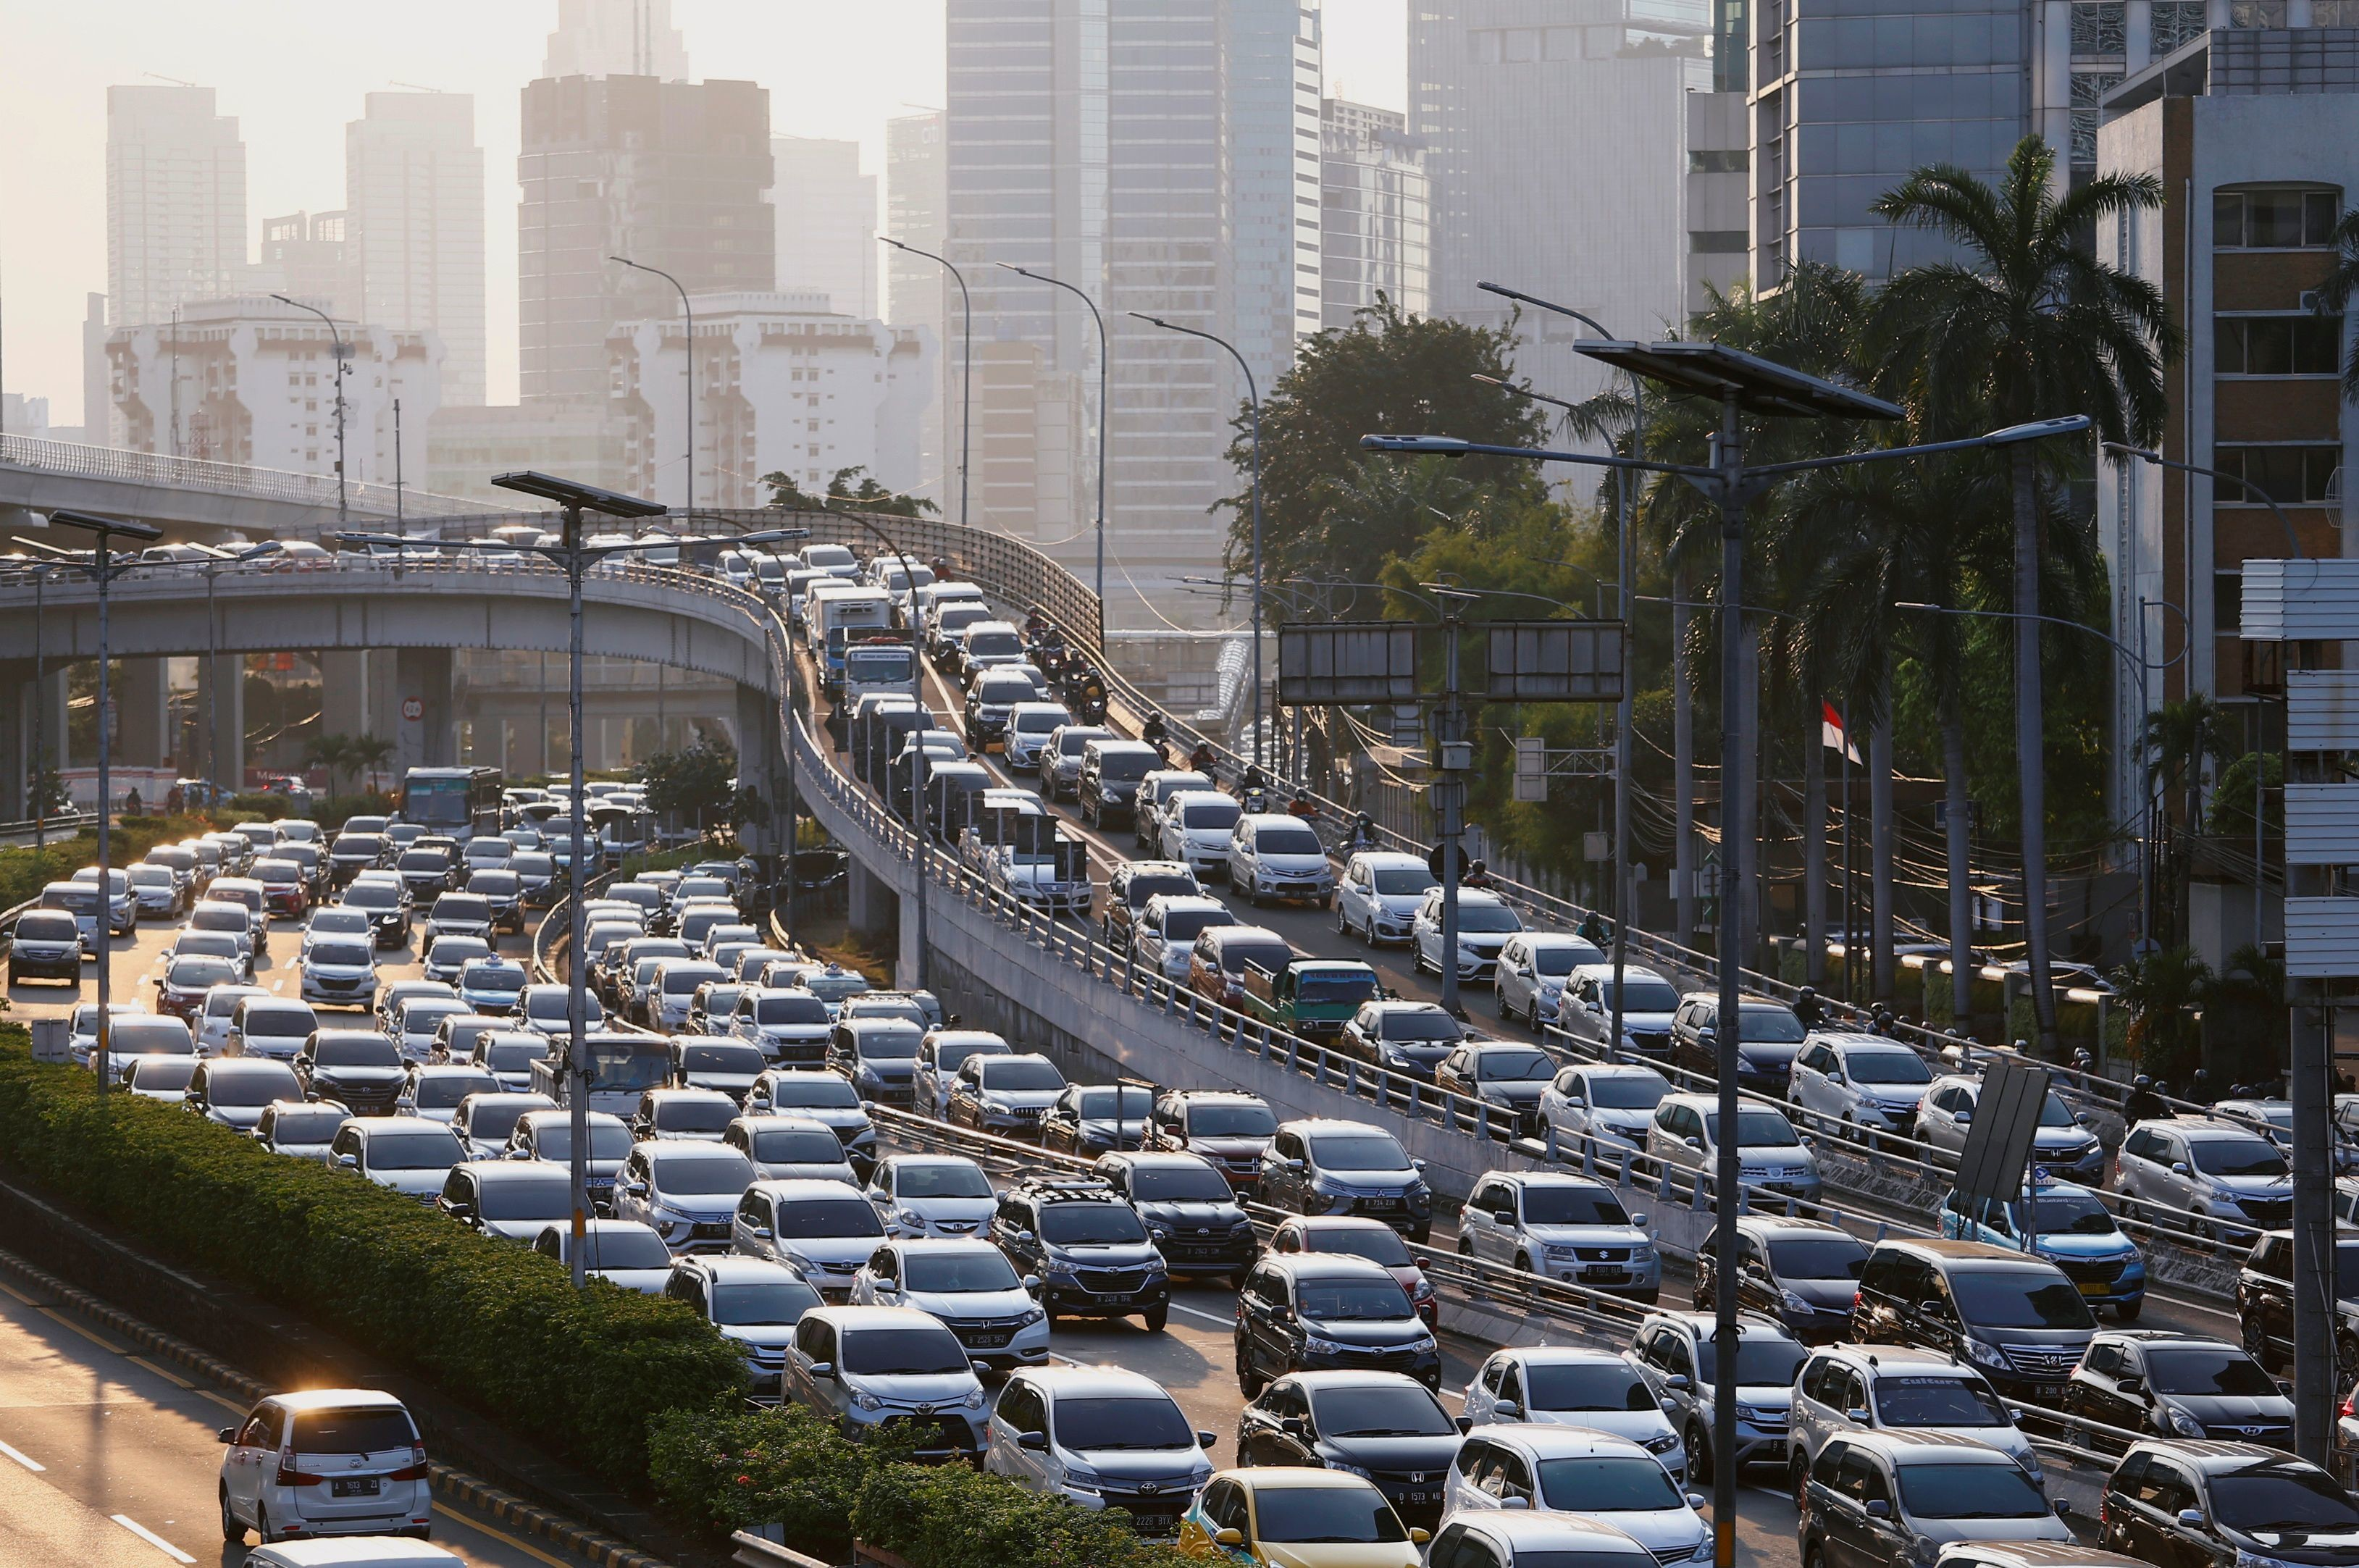 A general view of a traffic jam during large-scale social restrictions amid the coronavirus disease (COVID-19) outbreak in Jakarta, Indonesia May 19, 2020. REUTERS/Ajeng Dinar Ulfiana - RC2PRG9QU7DV